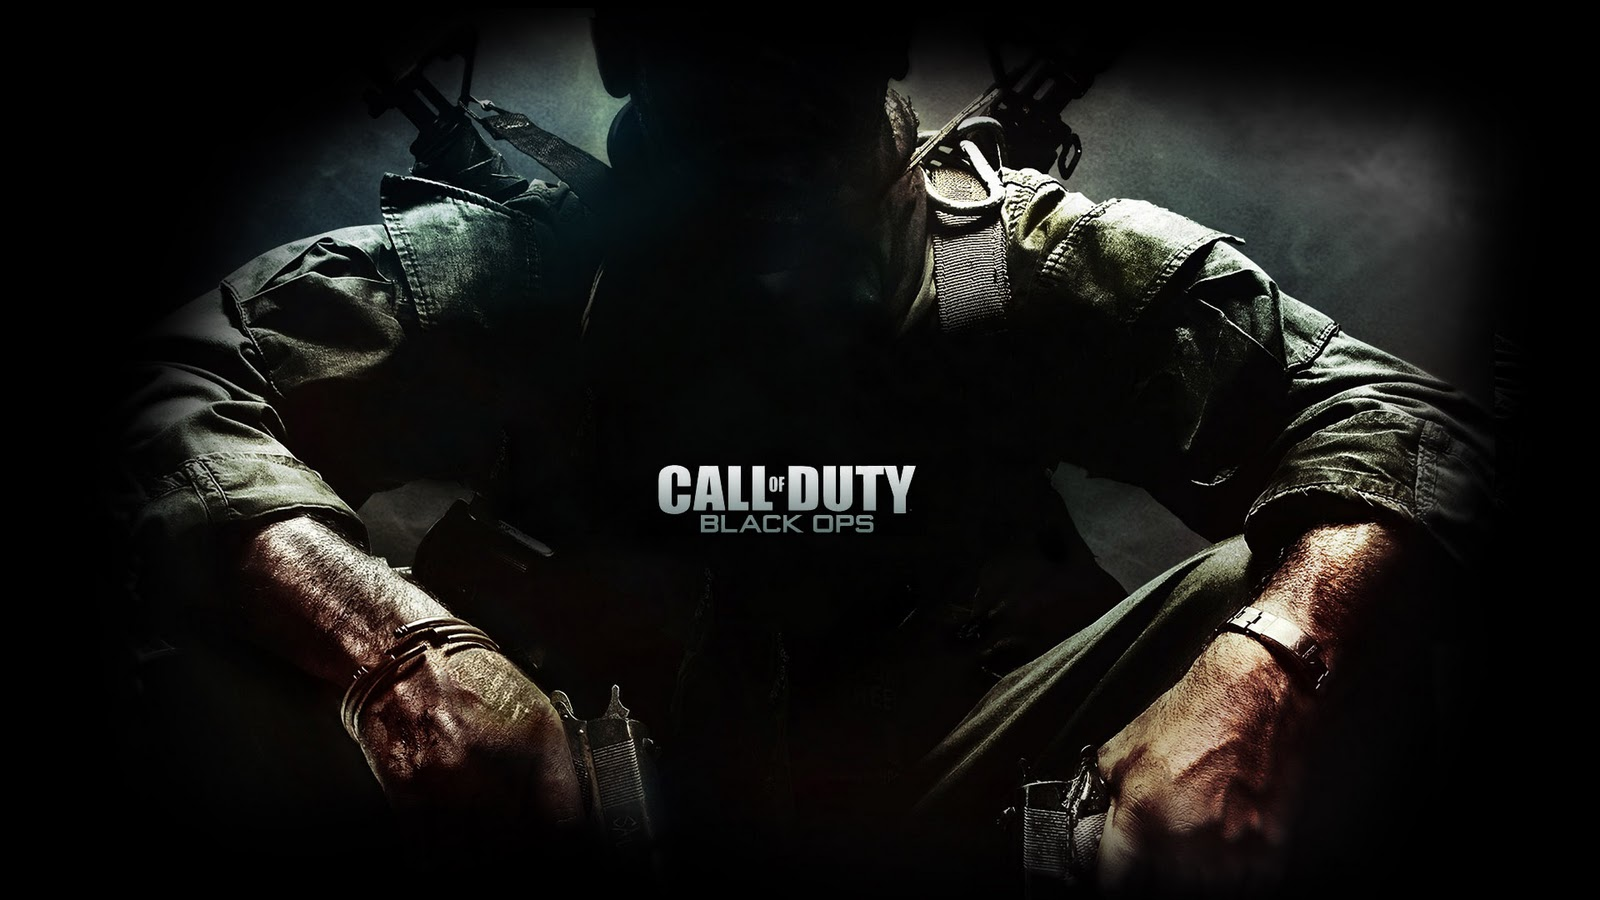 http://2.bp.blogspot.com/_nD_YgZuOadA/TUpjTeXtzFI/AAAAAAAABVo/gykoPFR7Kuo/s1600/call-of-duty-black-ops-dark_1920x1080_355-hd.jpg